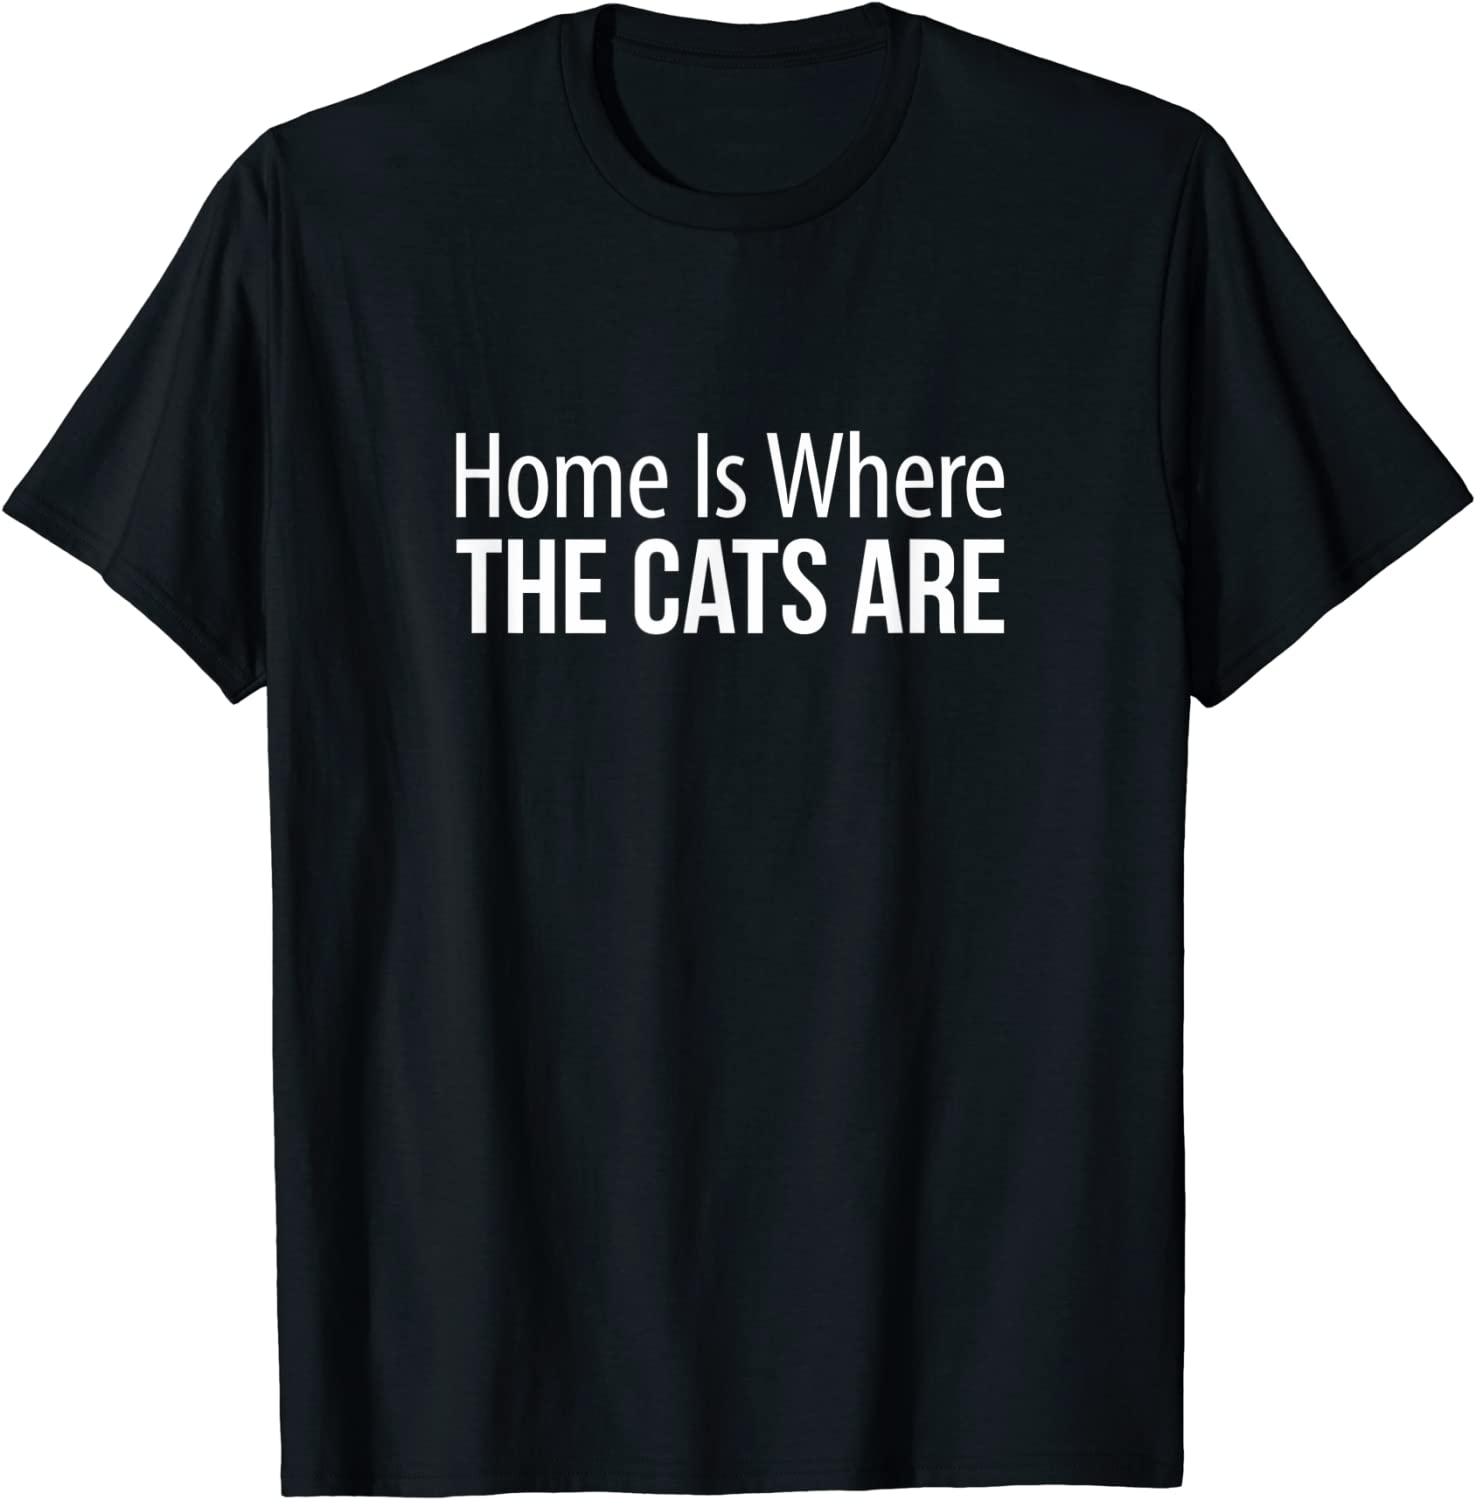 Home Is Where The Cats Are - T-Shirt